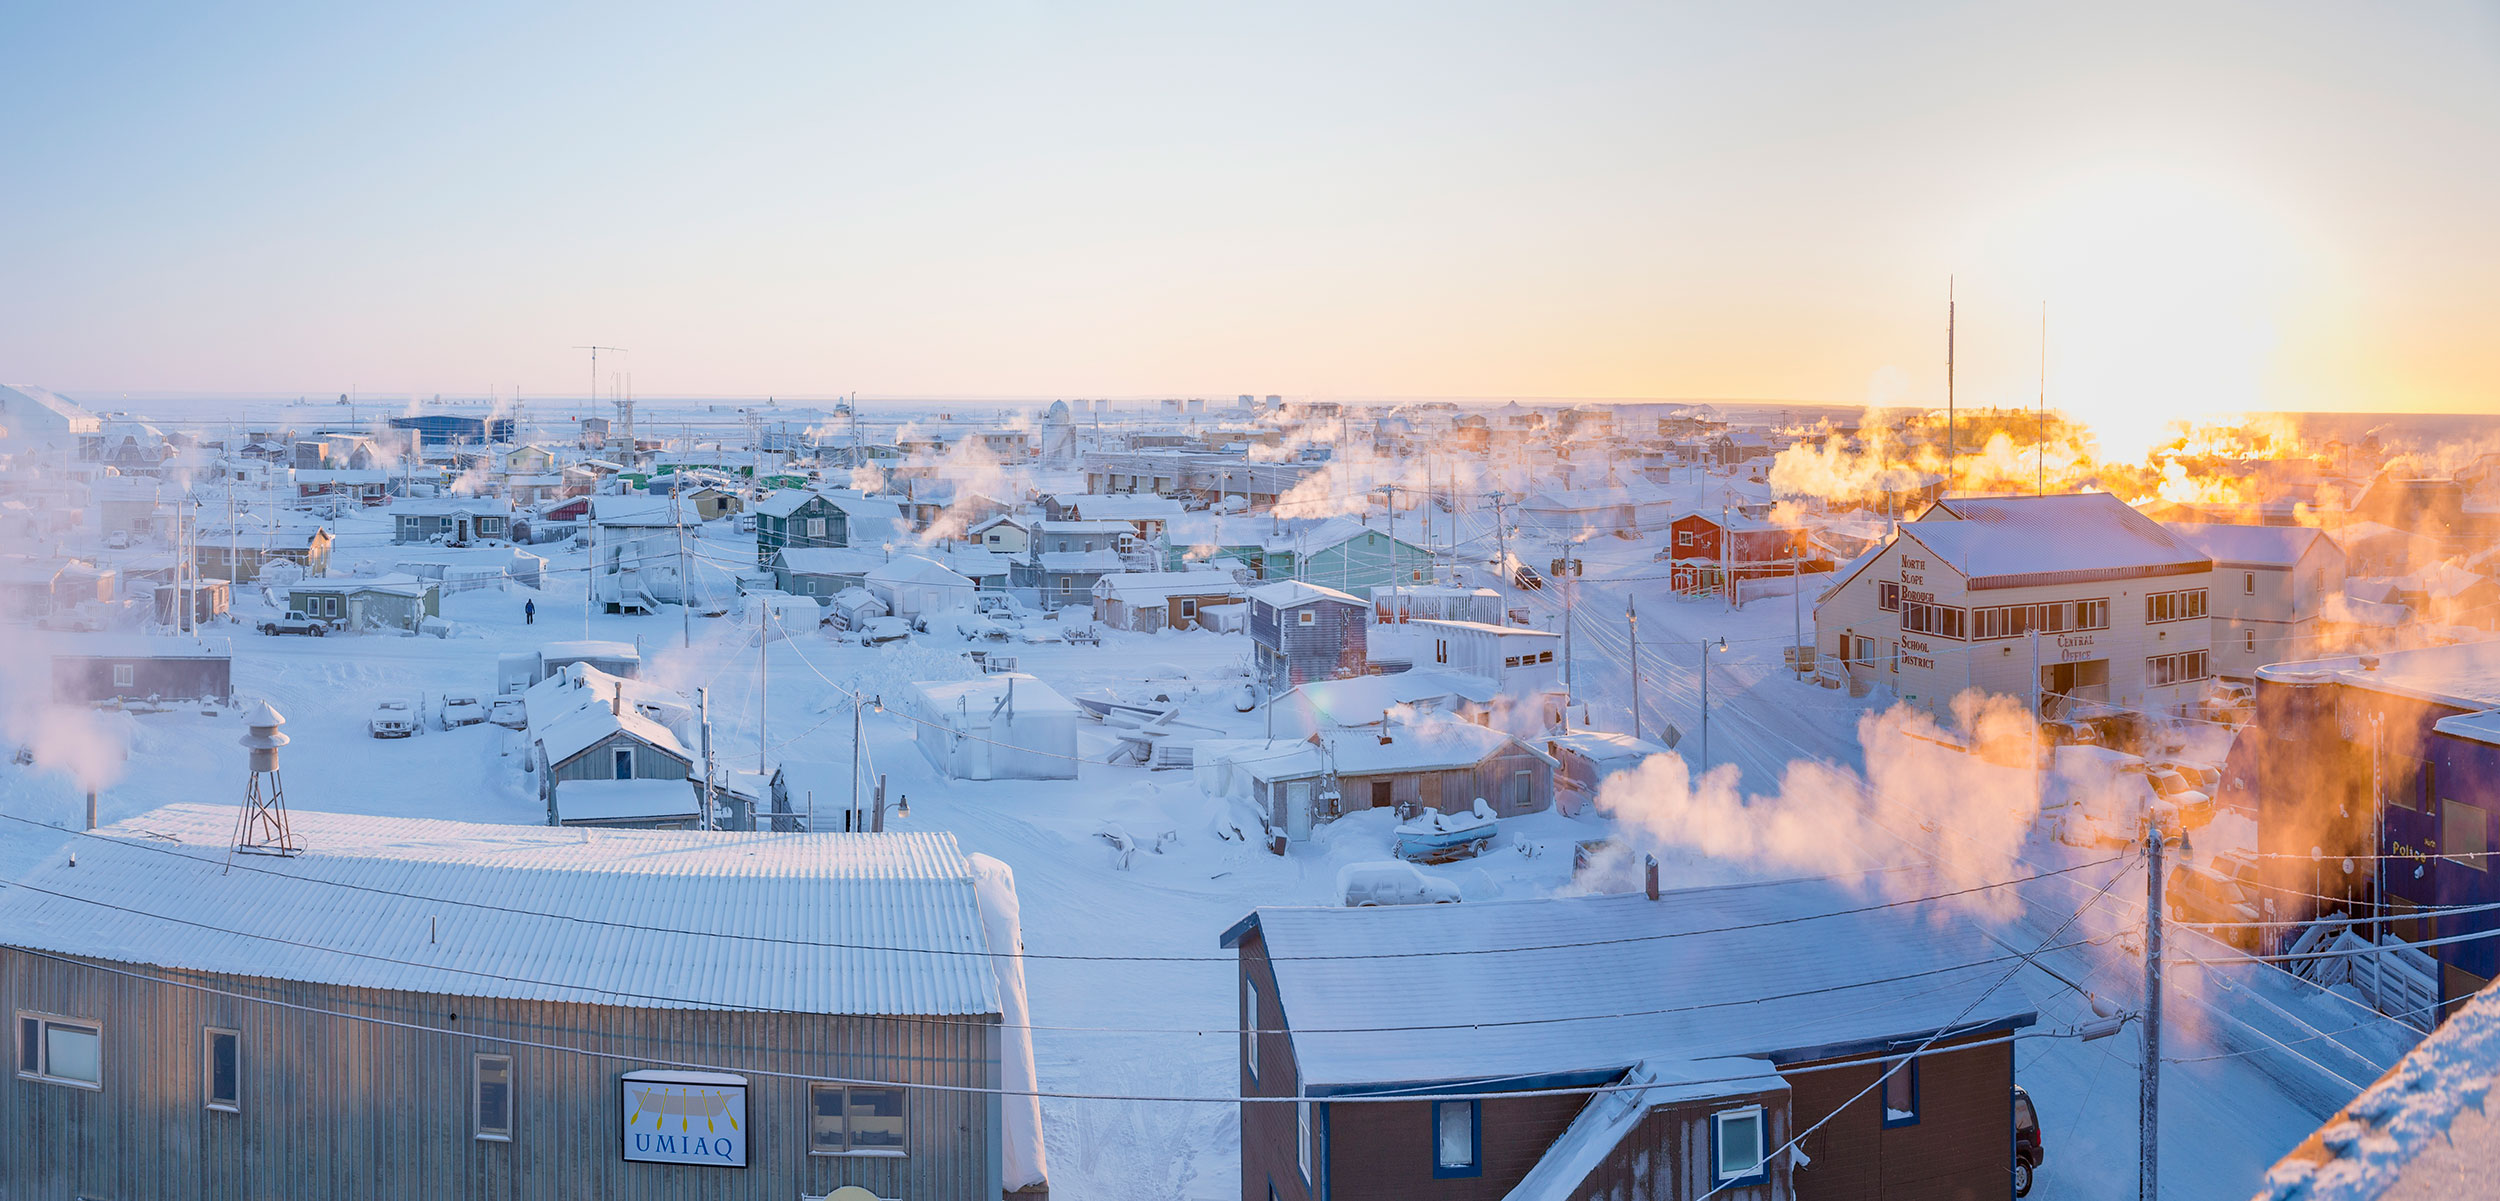 Barrow, Alaska, is the northernmost American city, above the Arctic Circle and along the Chukchi Sea coastline. Photo by Kevin Smith/Design Pics/Corbis